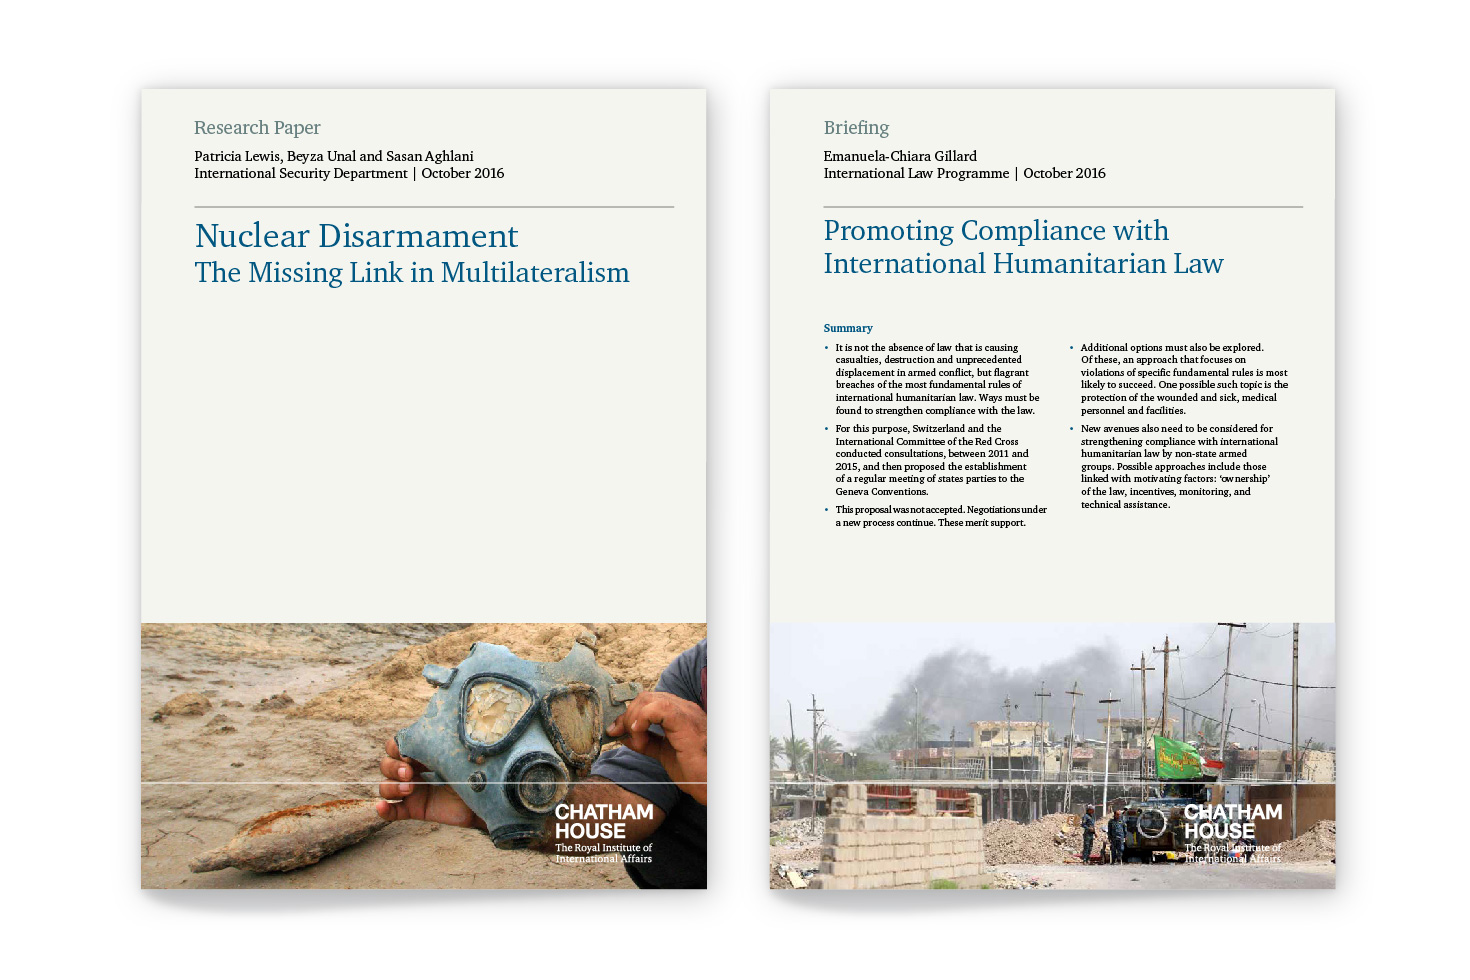 Chatham House publication covers